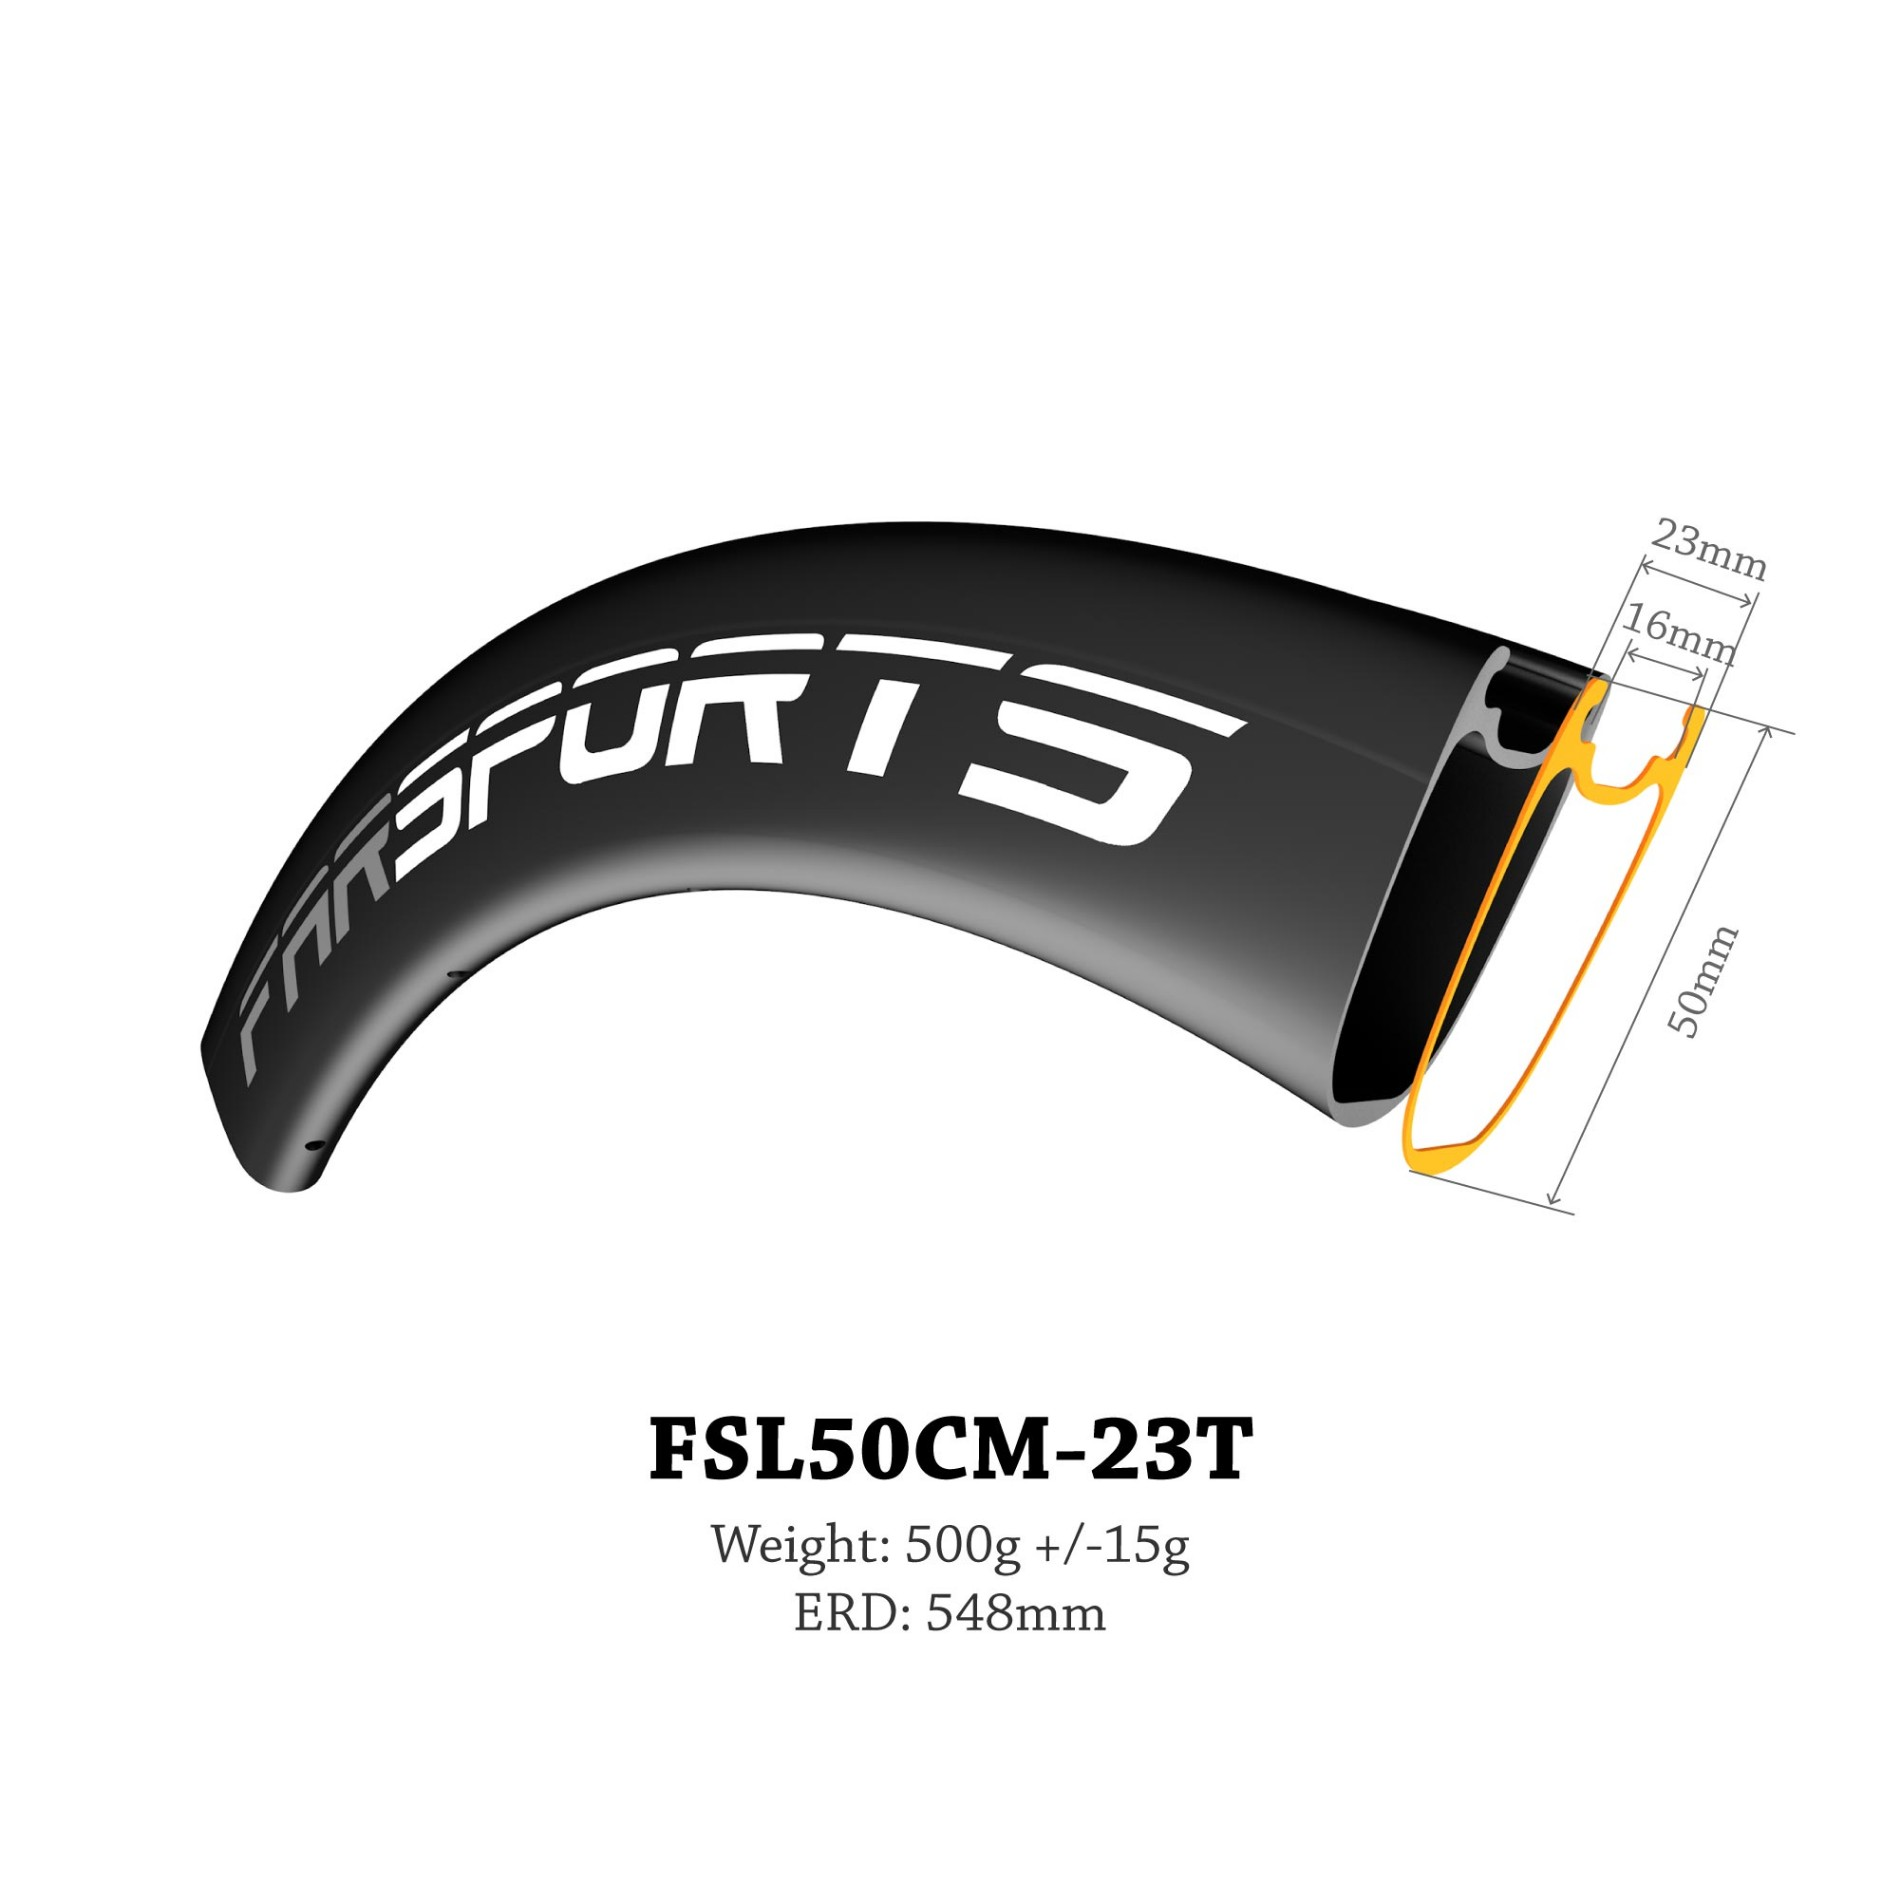 Tubeless Compatible 50mm Carbon Wheels With Chris King Hub Manufacturers, Tubeless Compatible 50mm Carbon Wheels With Chris King Hub Factory, Supply Tubeless Compatible 50mm Carbon Wheels With Chris King Hub